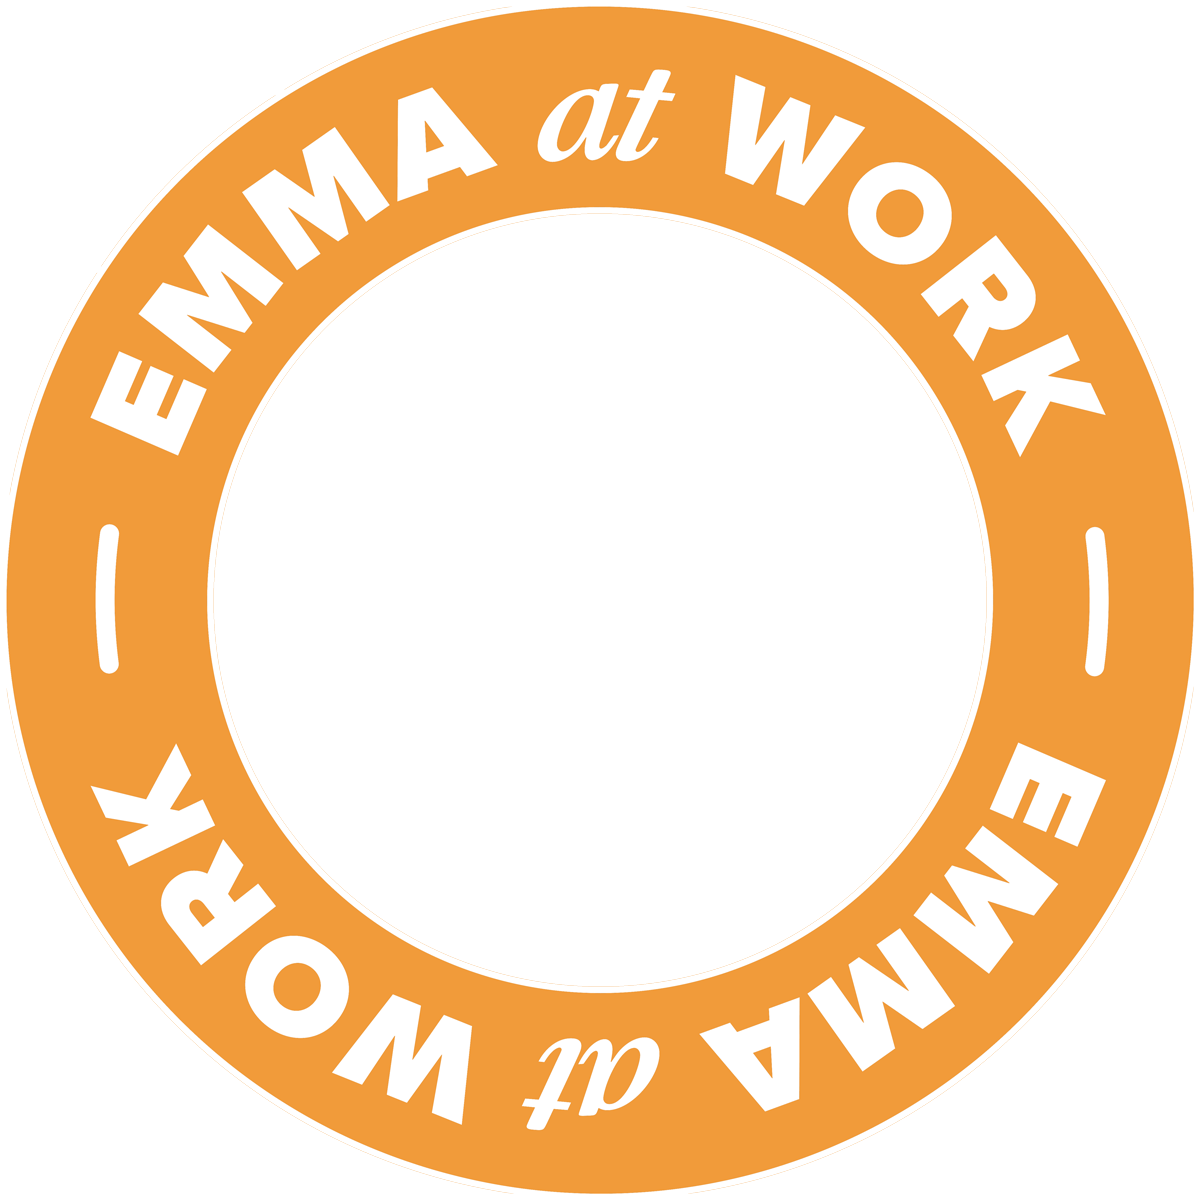 EAW_logo-nw.png